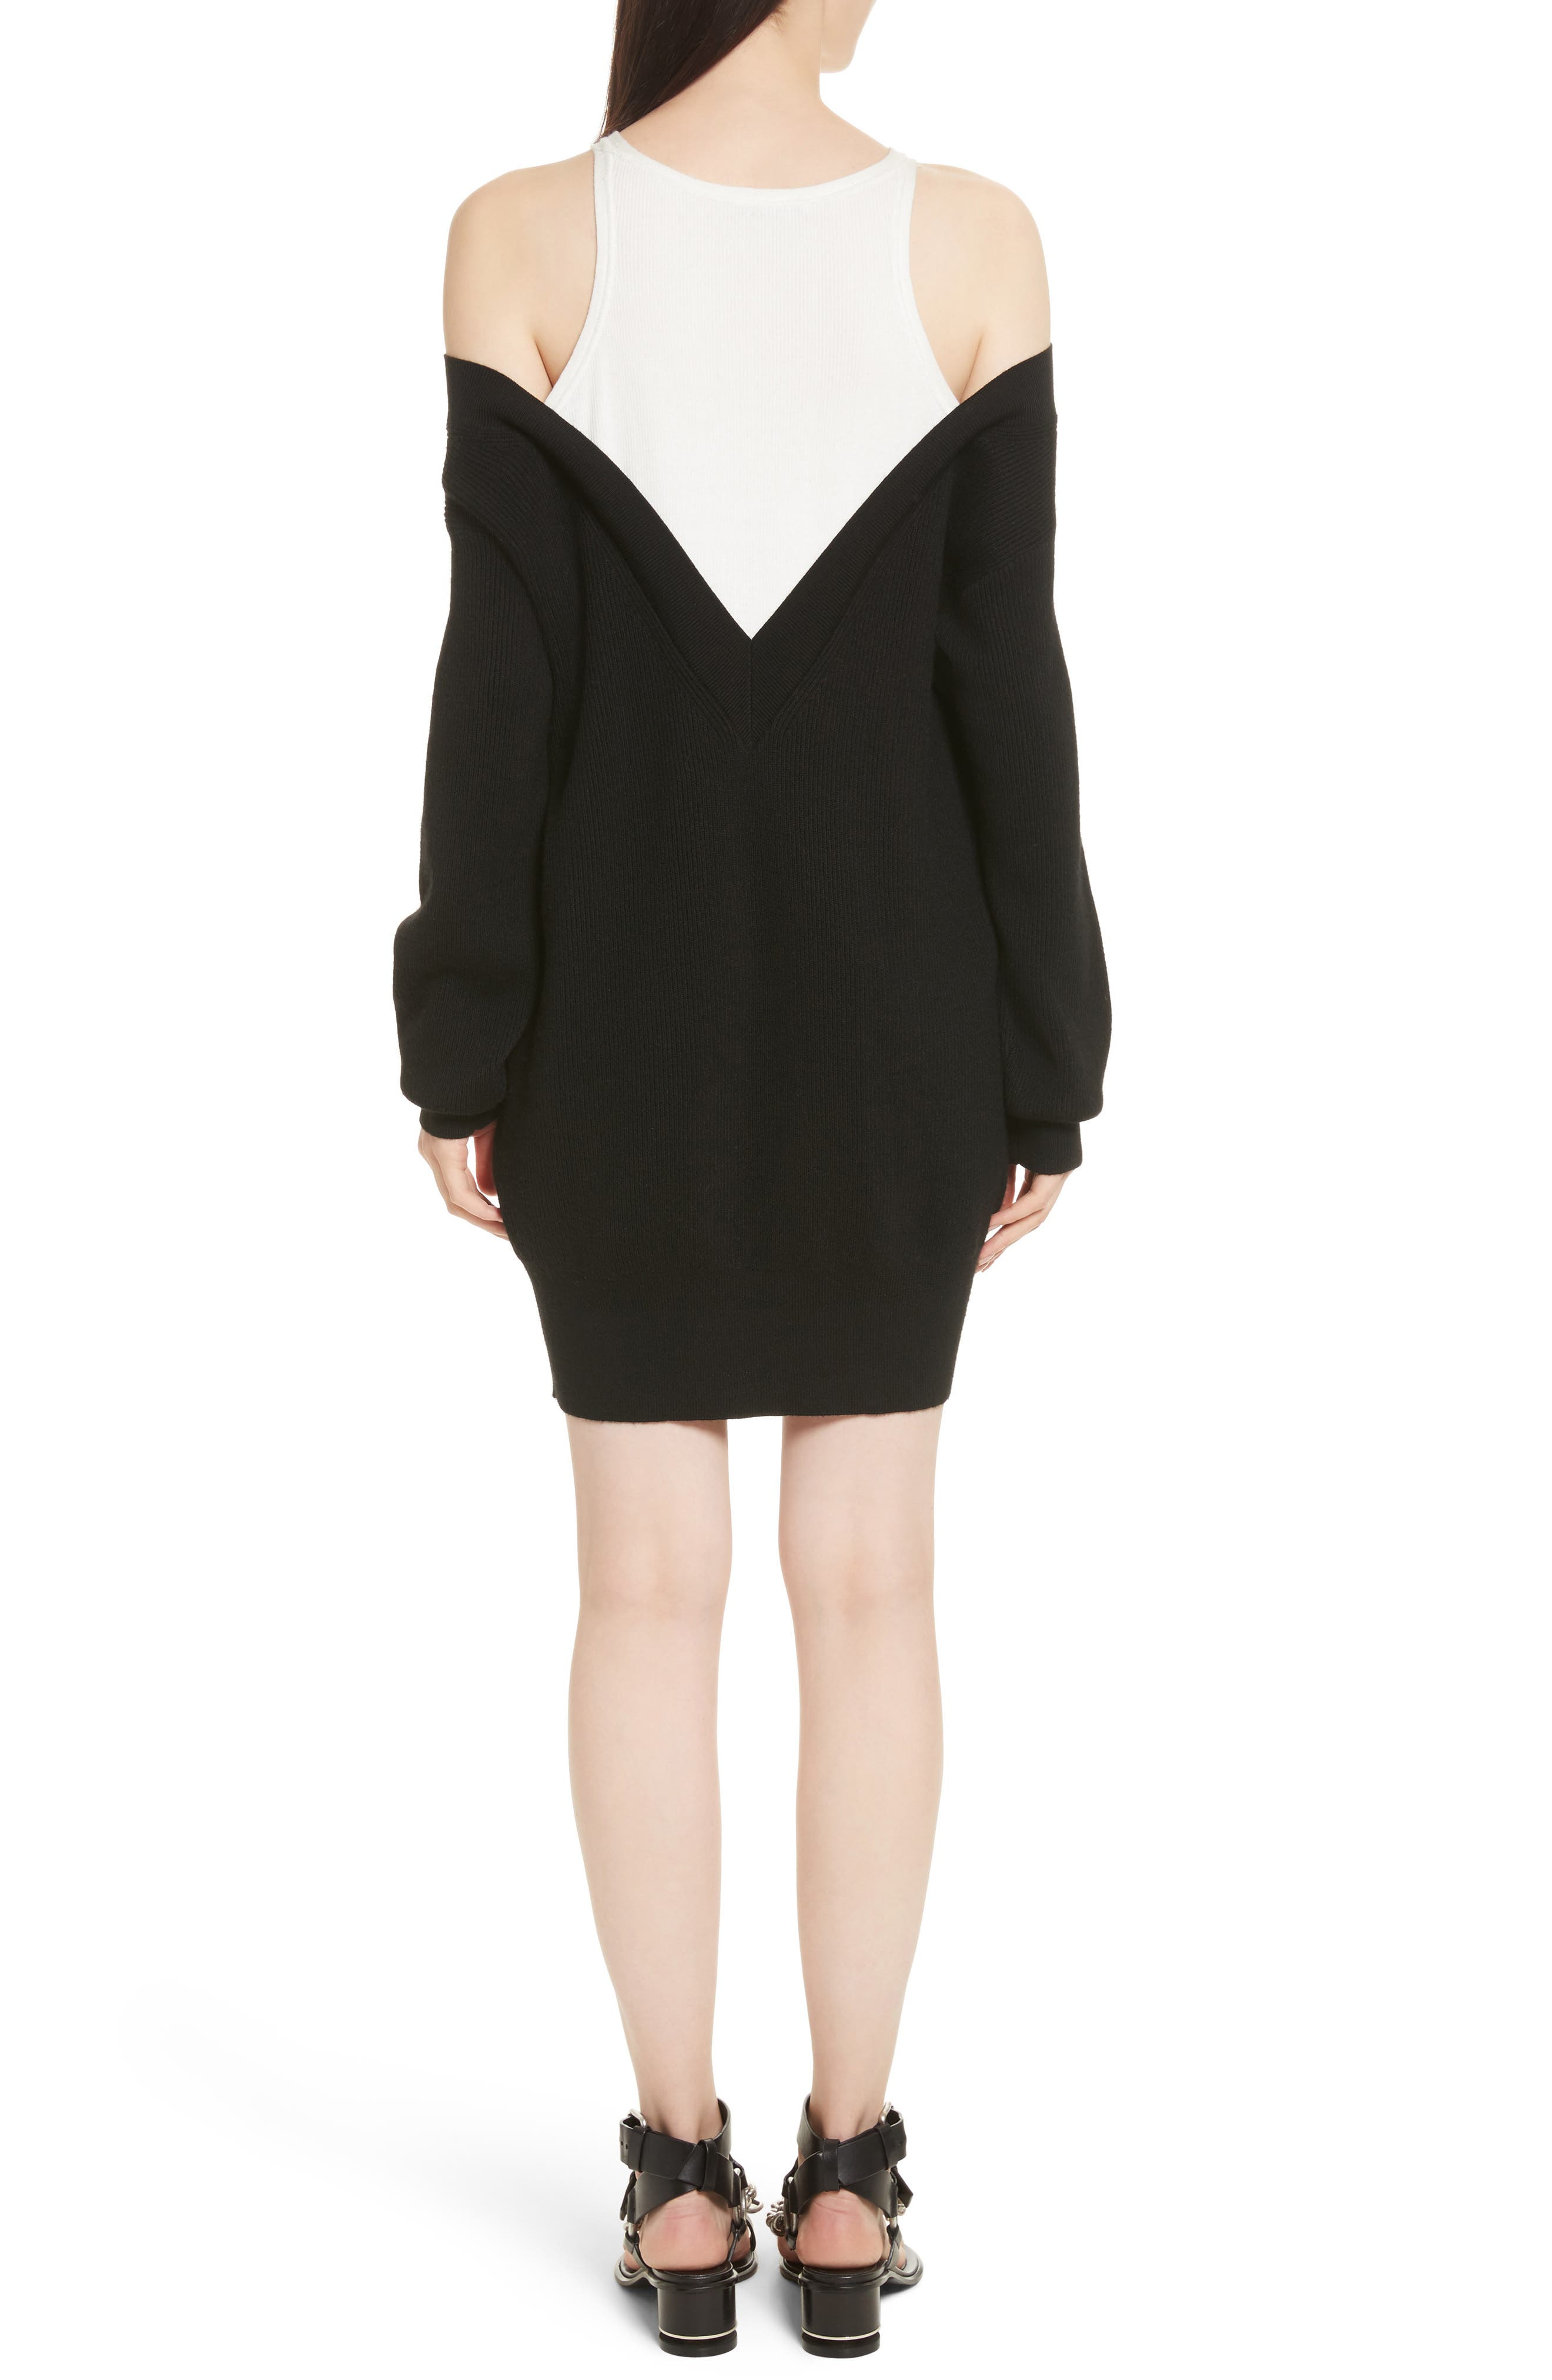 T by Alexander Wang Bi-Layer Knit Dress with Inner Tank,                             Alternate thumbnail 2, color,                             018